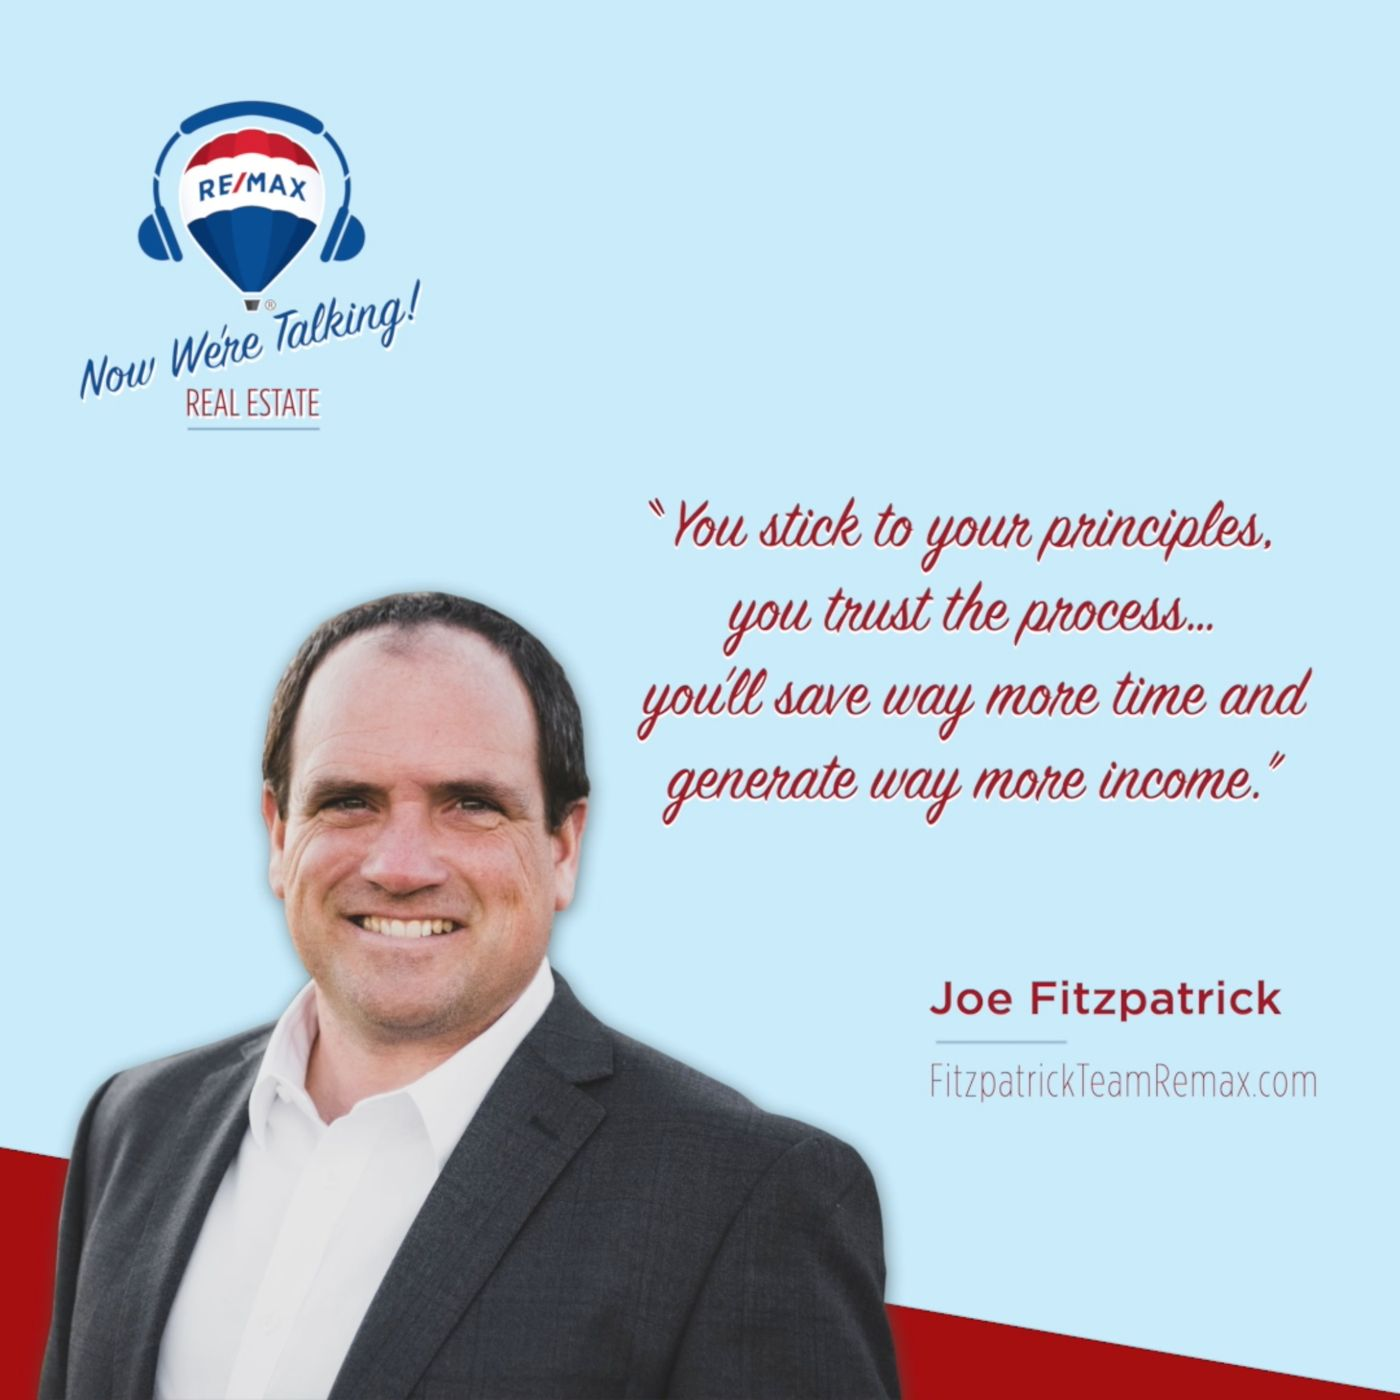 No Nonsense: Team Leader Joe Fitzpatrick Tells it to You Straight